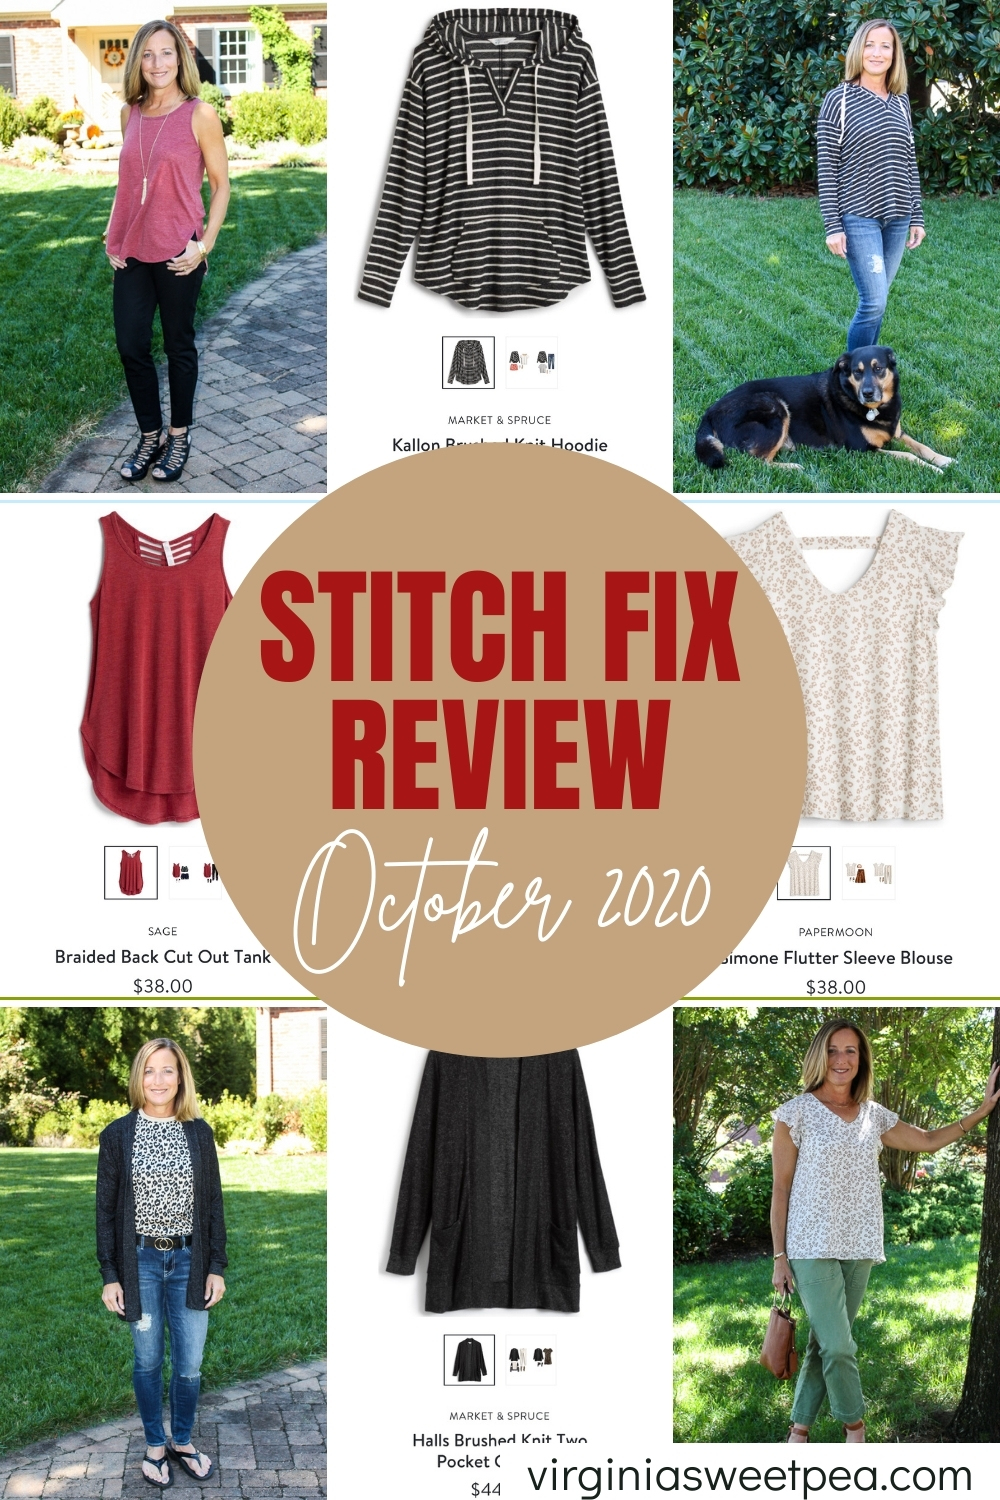 Stitch Fix Review for October 2020 - See the fall fashions picked by my stylist to try for October.  #stitchfix #stitchfixreview #stitchfix #falloutfits via @spaula